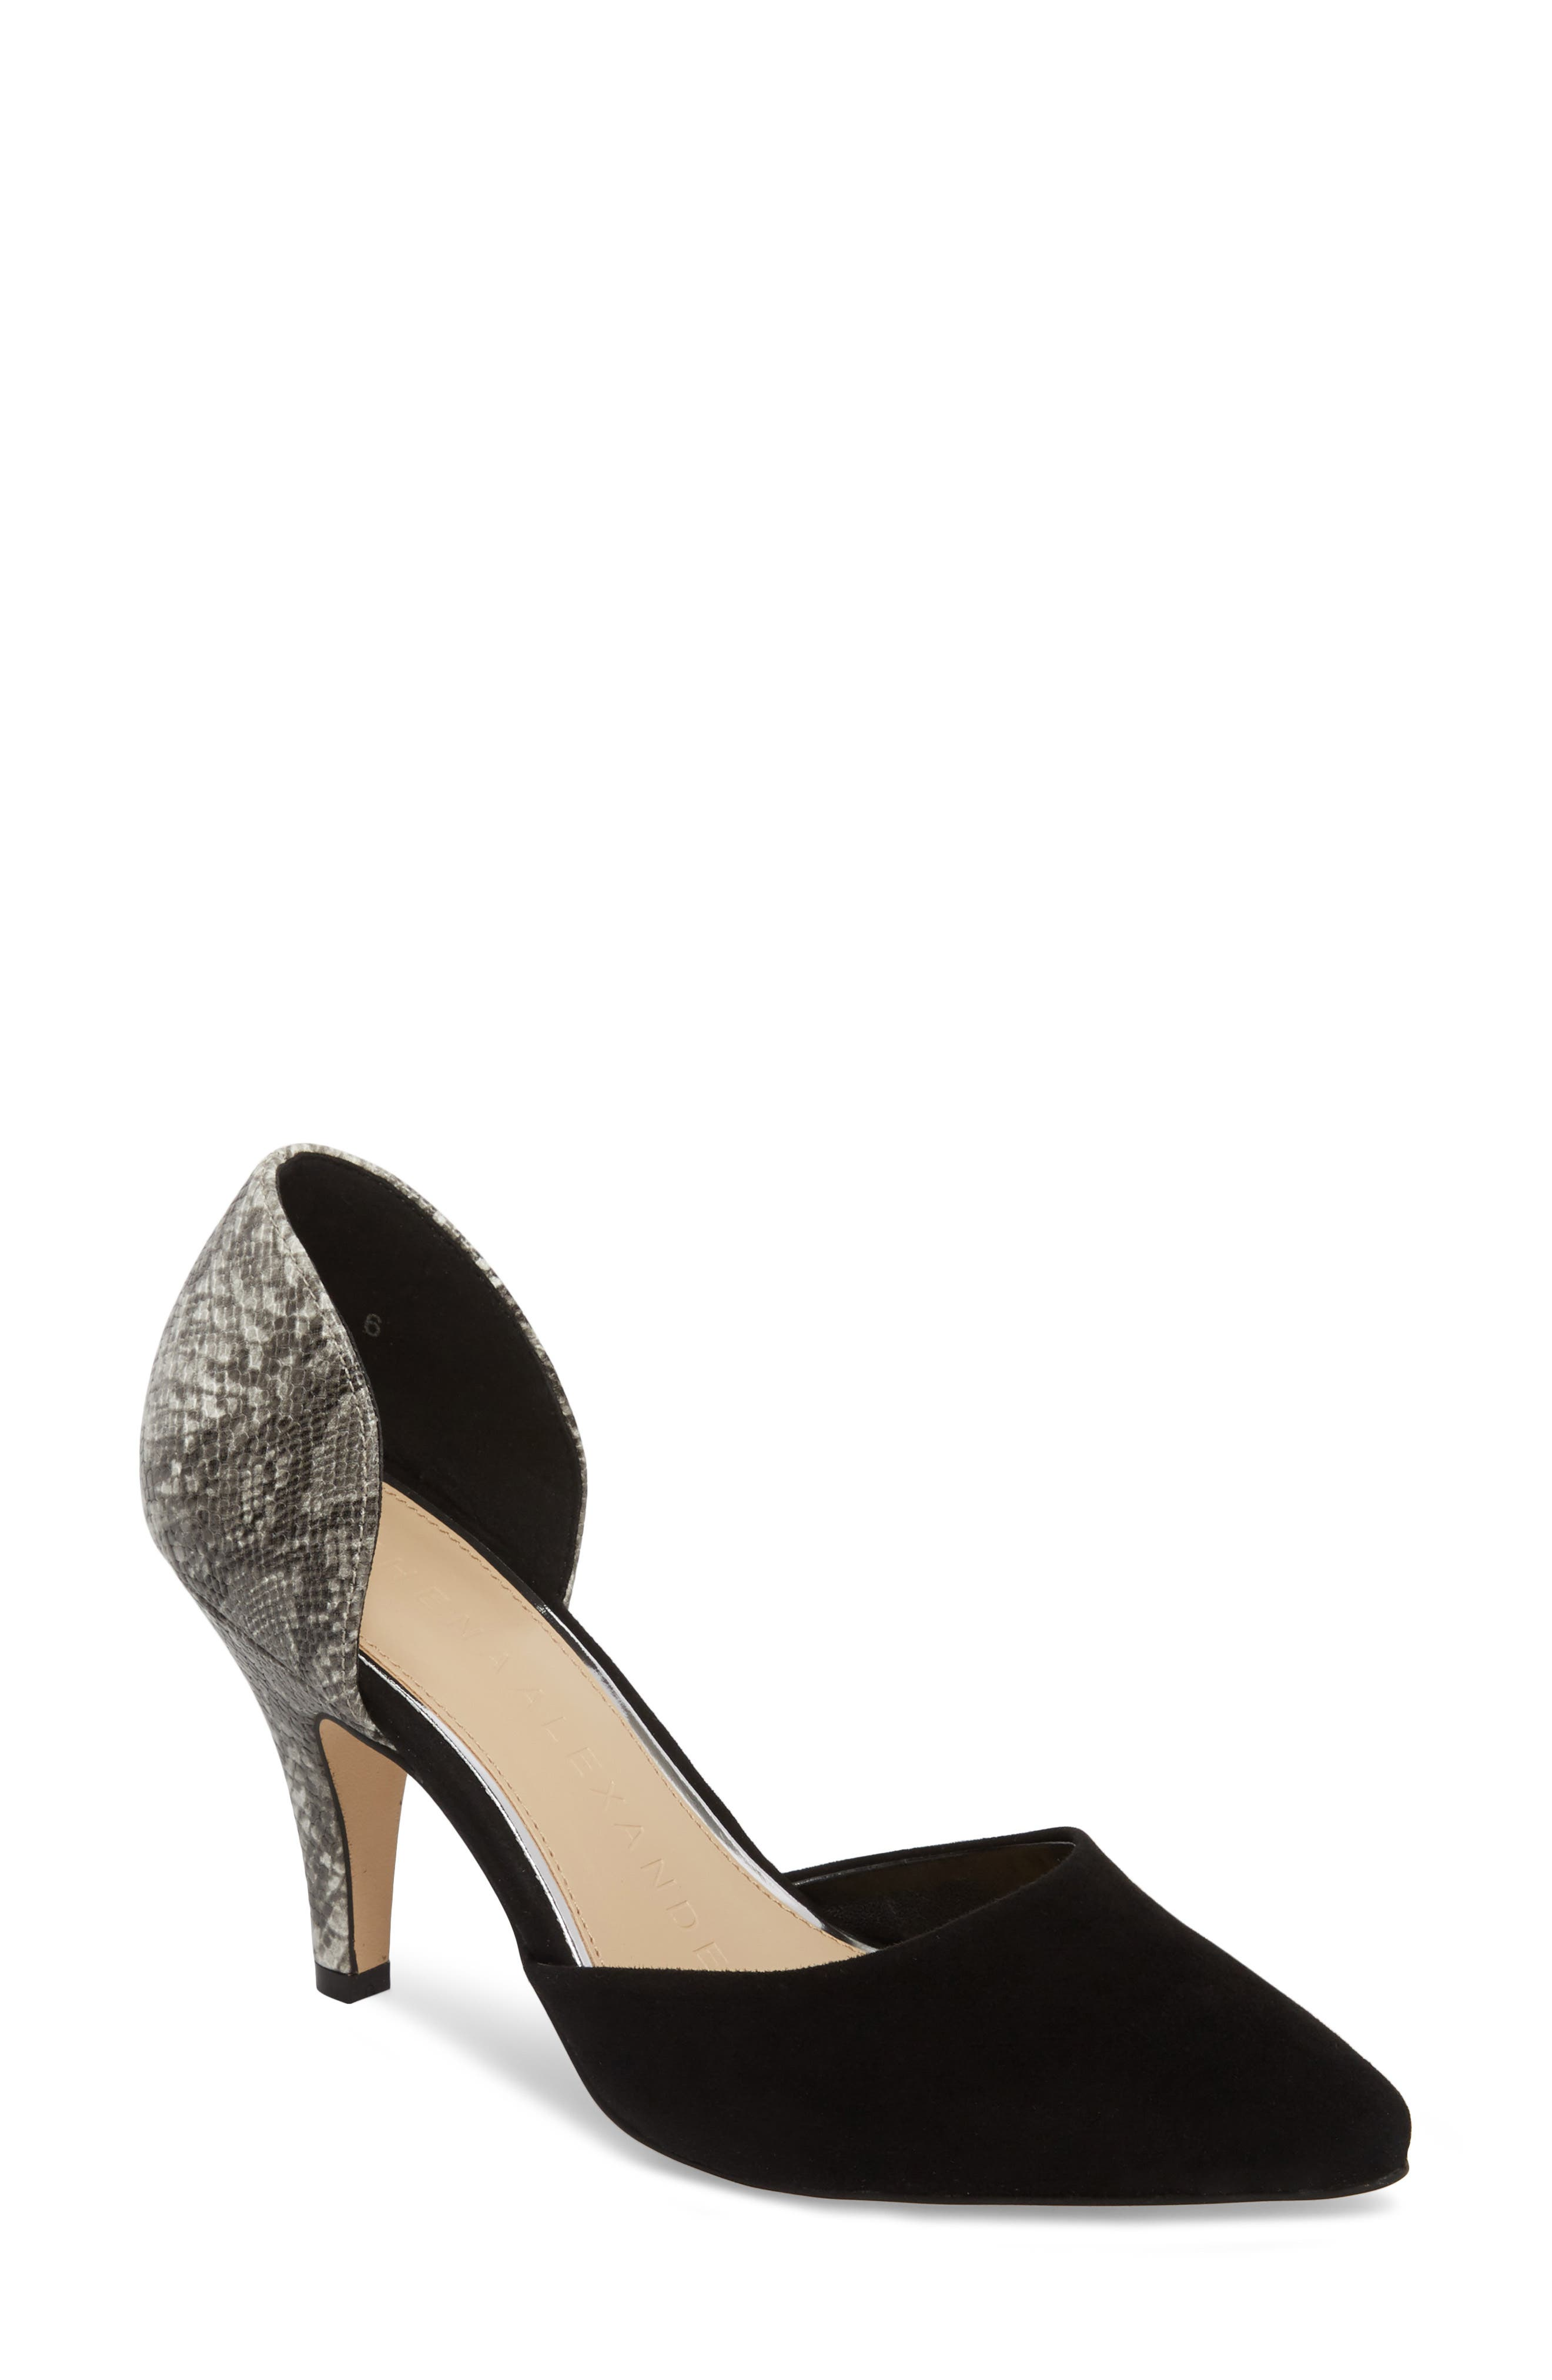 Groton d'Orsay Pump,                             Main thumbnail 1, color,                             BLACK SUEDE